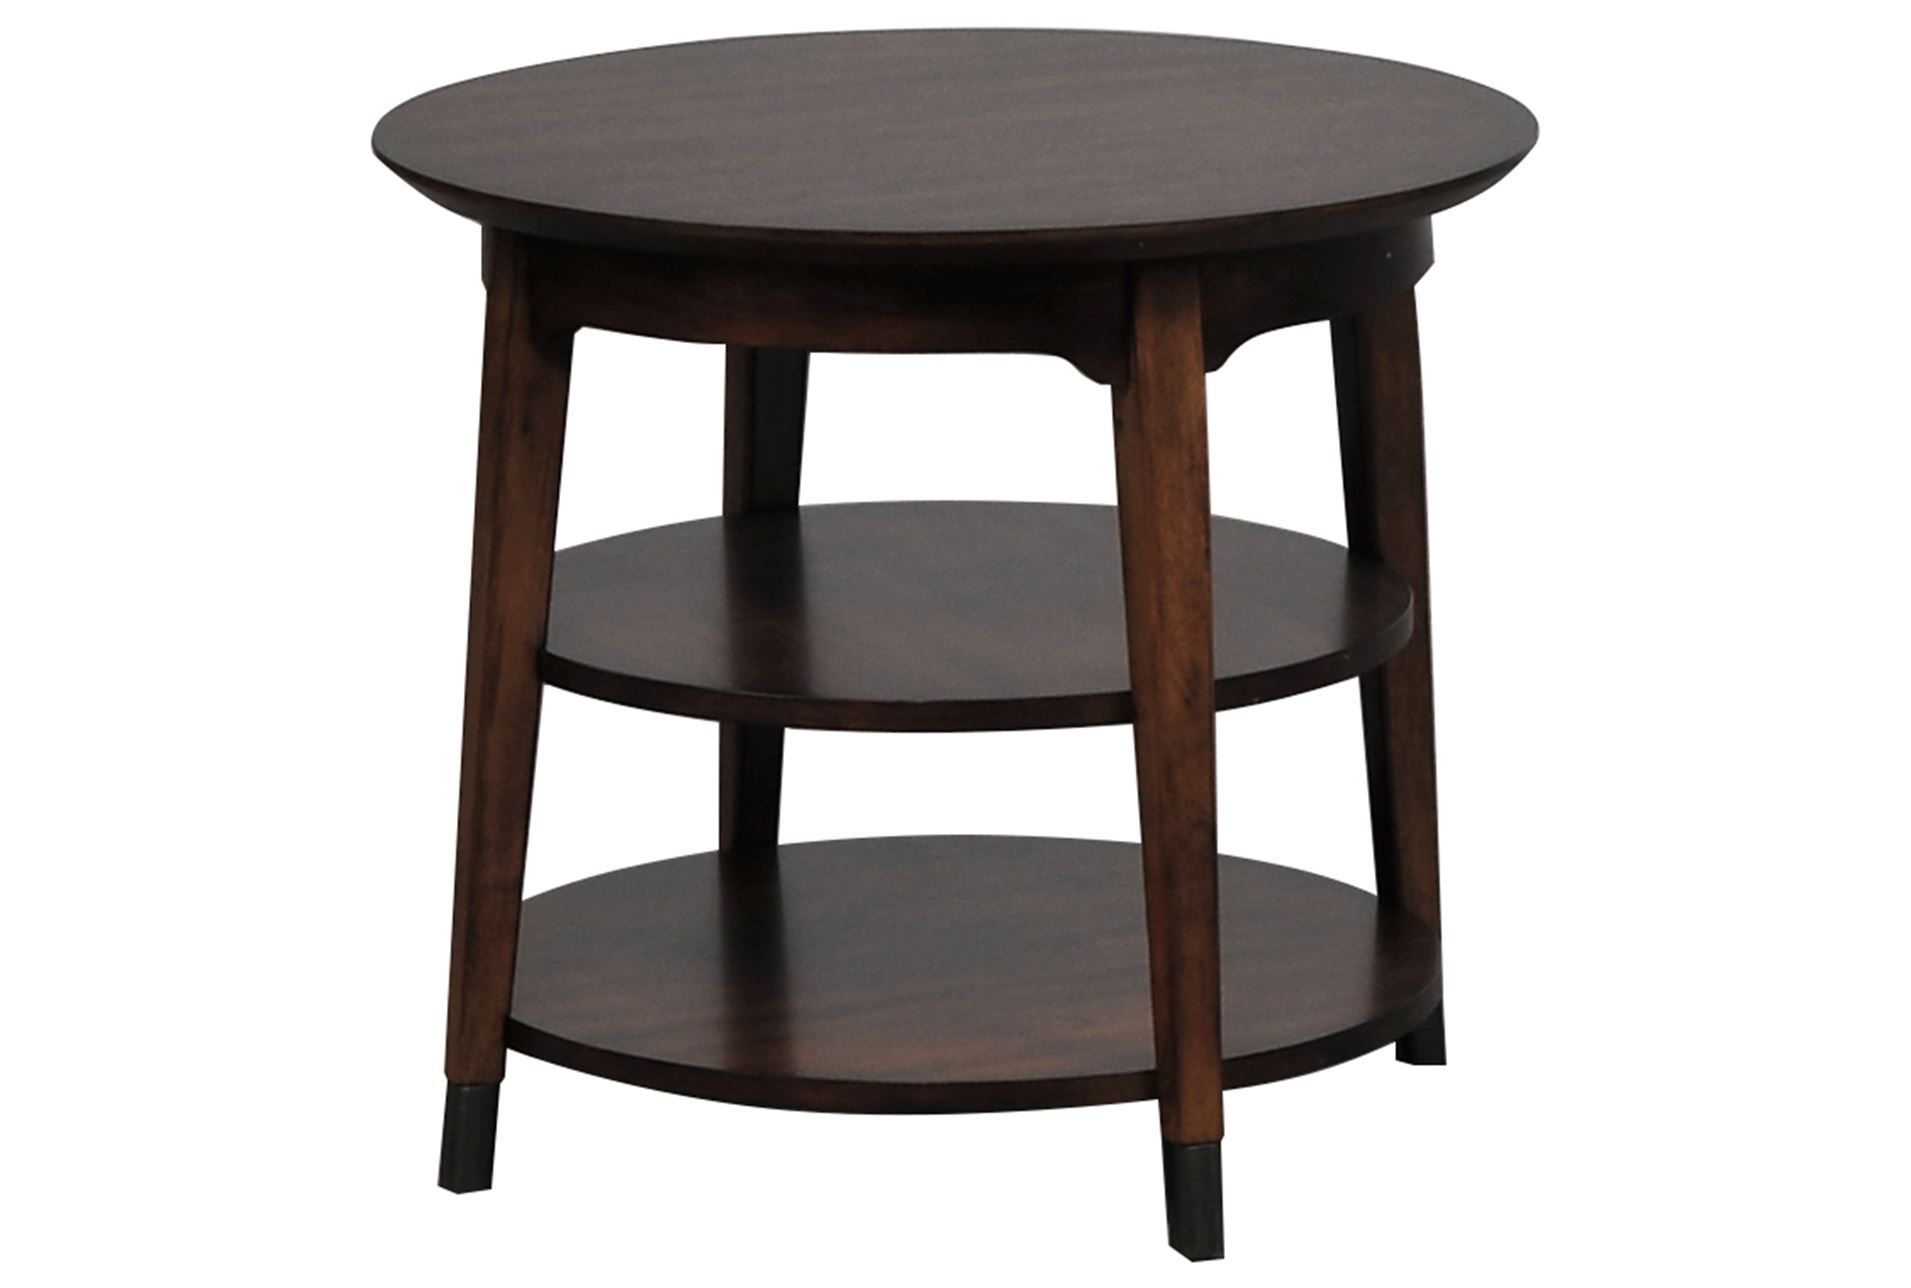 tablecloth living end tables farmhouse glamorous table small set covers and target room glass wood top wooden for plans base metal accent square round woodworking tablecloths full